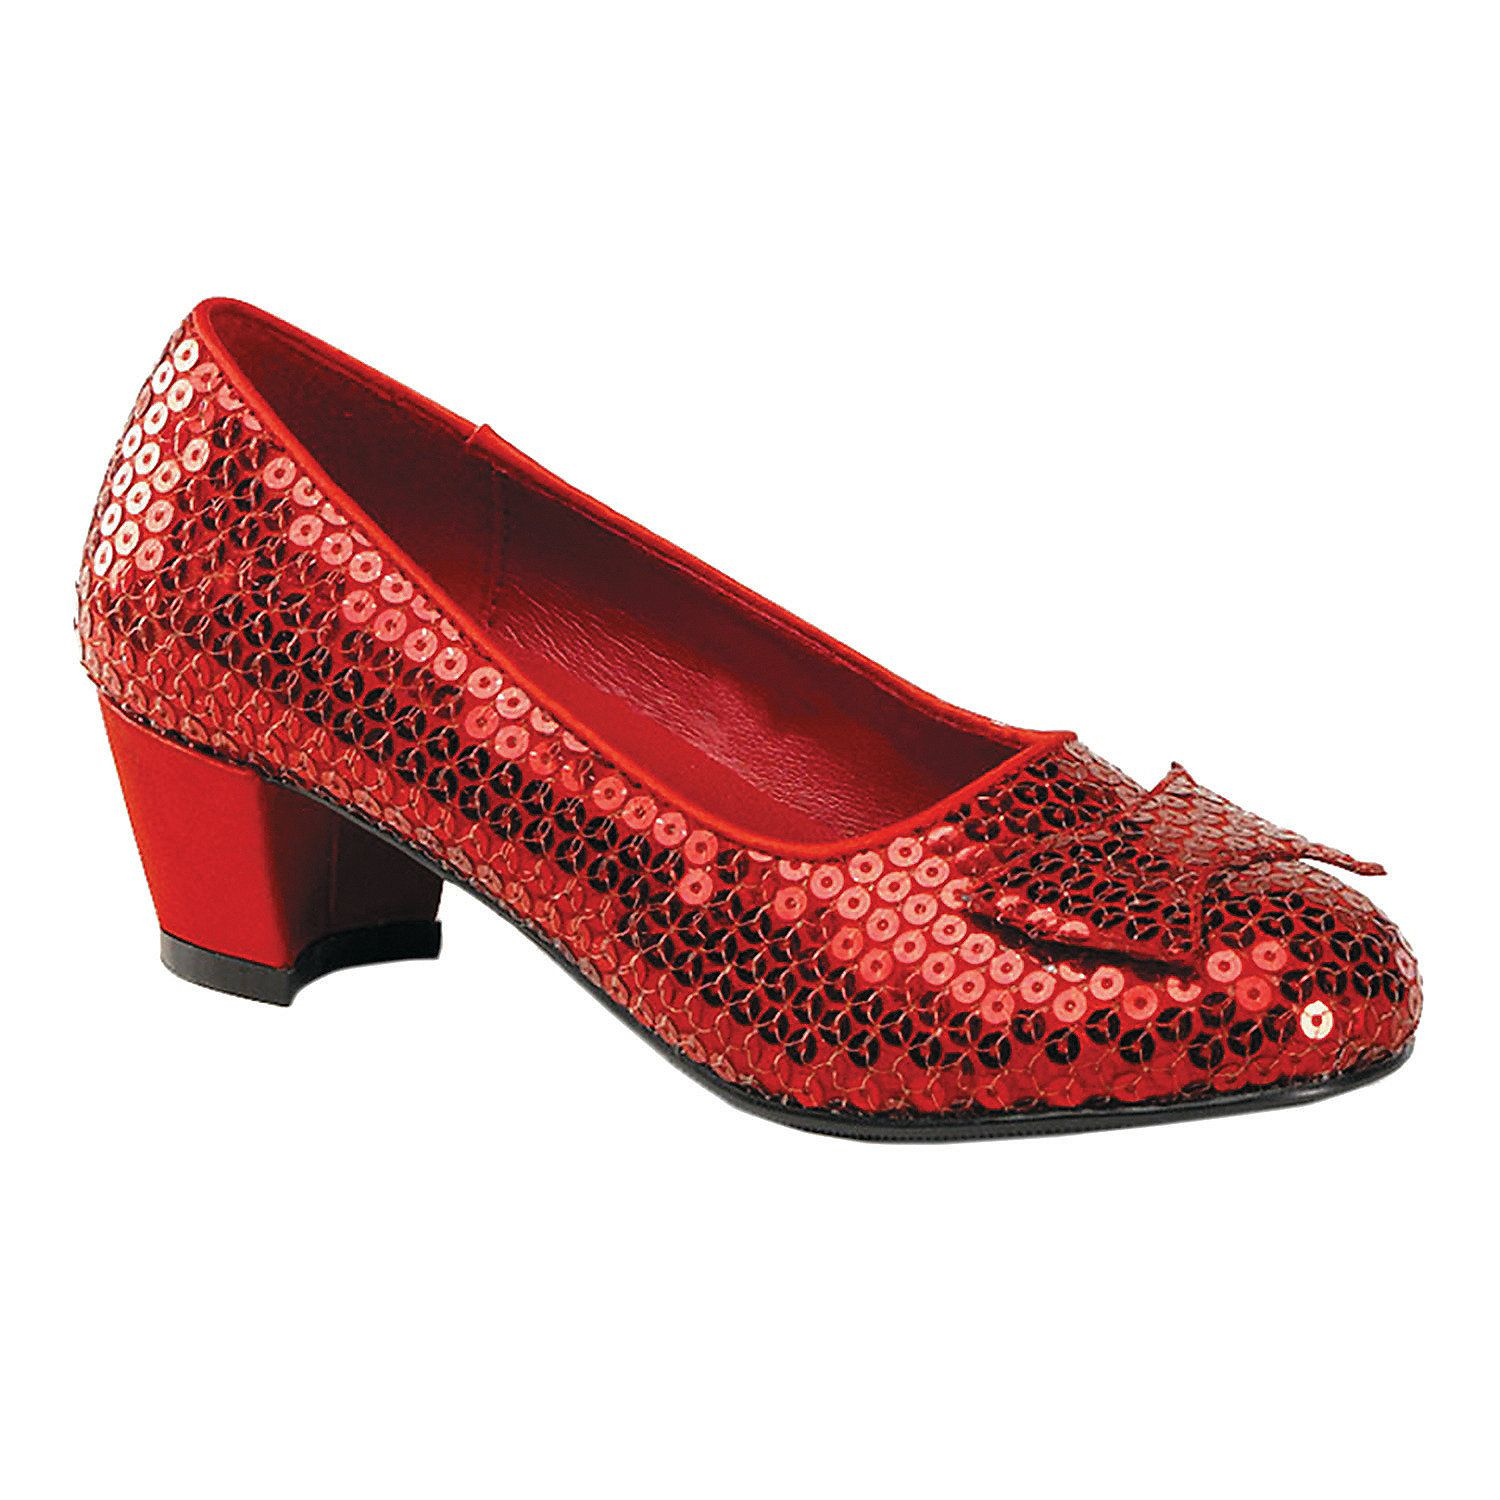 895585dc076 Women's Red Sequin Shoes in 2019 | Wizard of Oz Modern Halloween ...